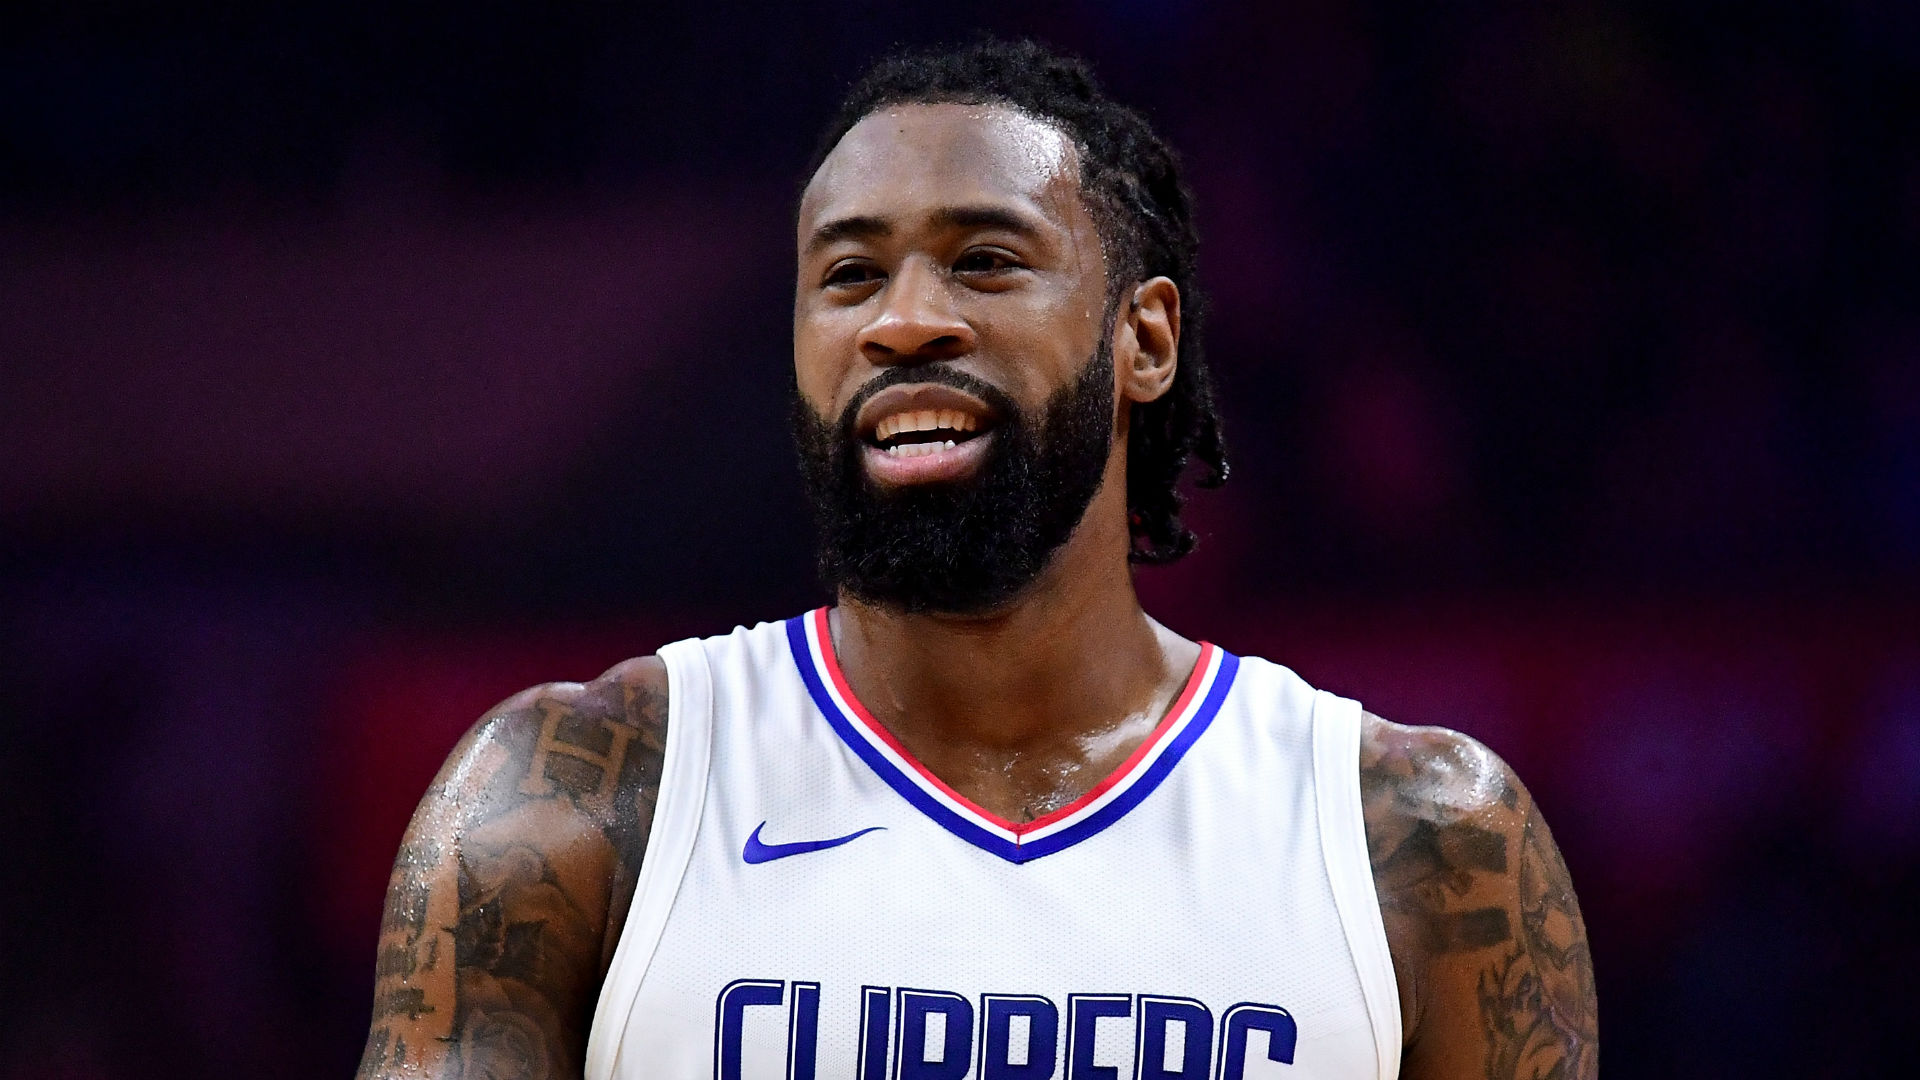 DeAndre Jordan opts out of deal, opening door to sign with Mavs